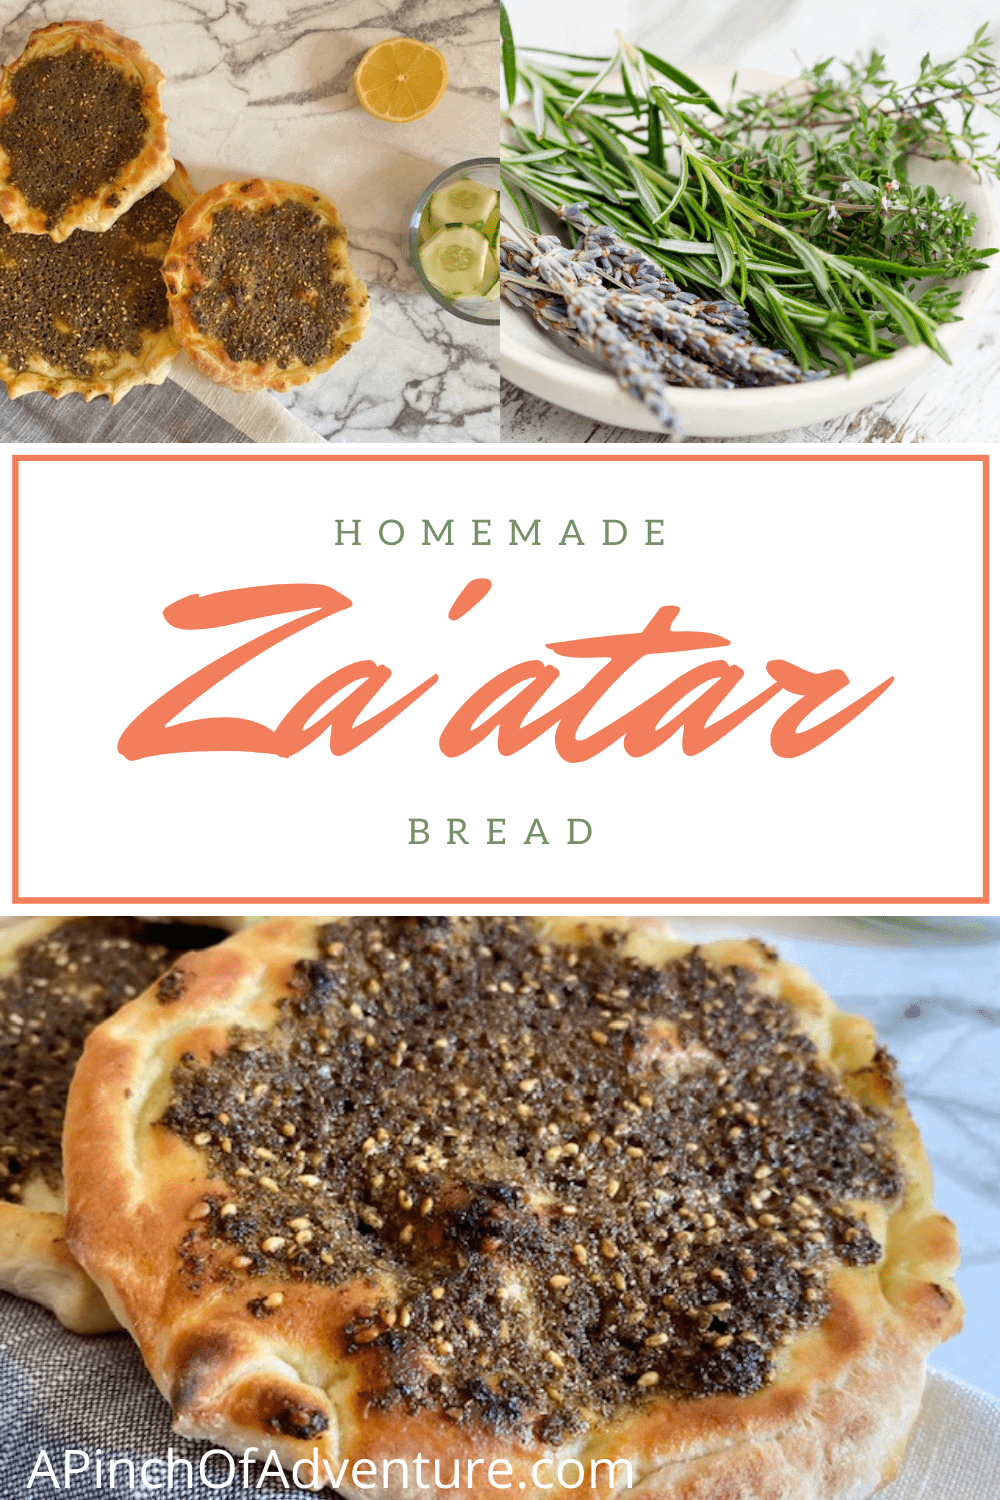 Lebanese Flat bread, or za'atar bread is a traditional yeast bread made with za'atar seasoning blend. It is also called, Manakish, man'ouche, or manakeesh. The Za'atar spice on top is a mixture of toasted thyme, sesame seeds, sumac , olive oil and lemon juice. This savory tart is baked to perfection, with perfectly soft pita bread and is usually served warm, either with hummus or by itself. Sometimes this manaqish is made with cheese as well and is similar to a Middle Eastern Pizza. -APinchOfAdventure